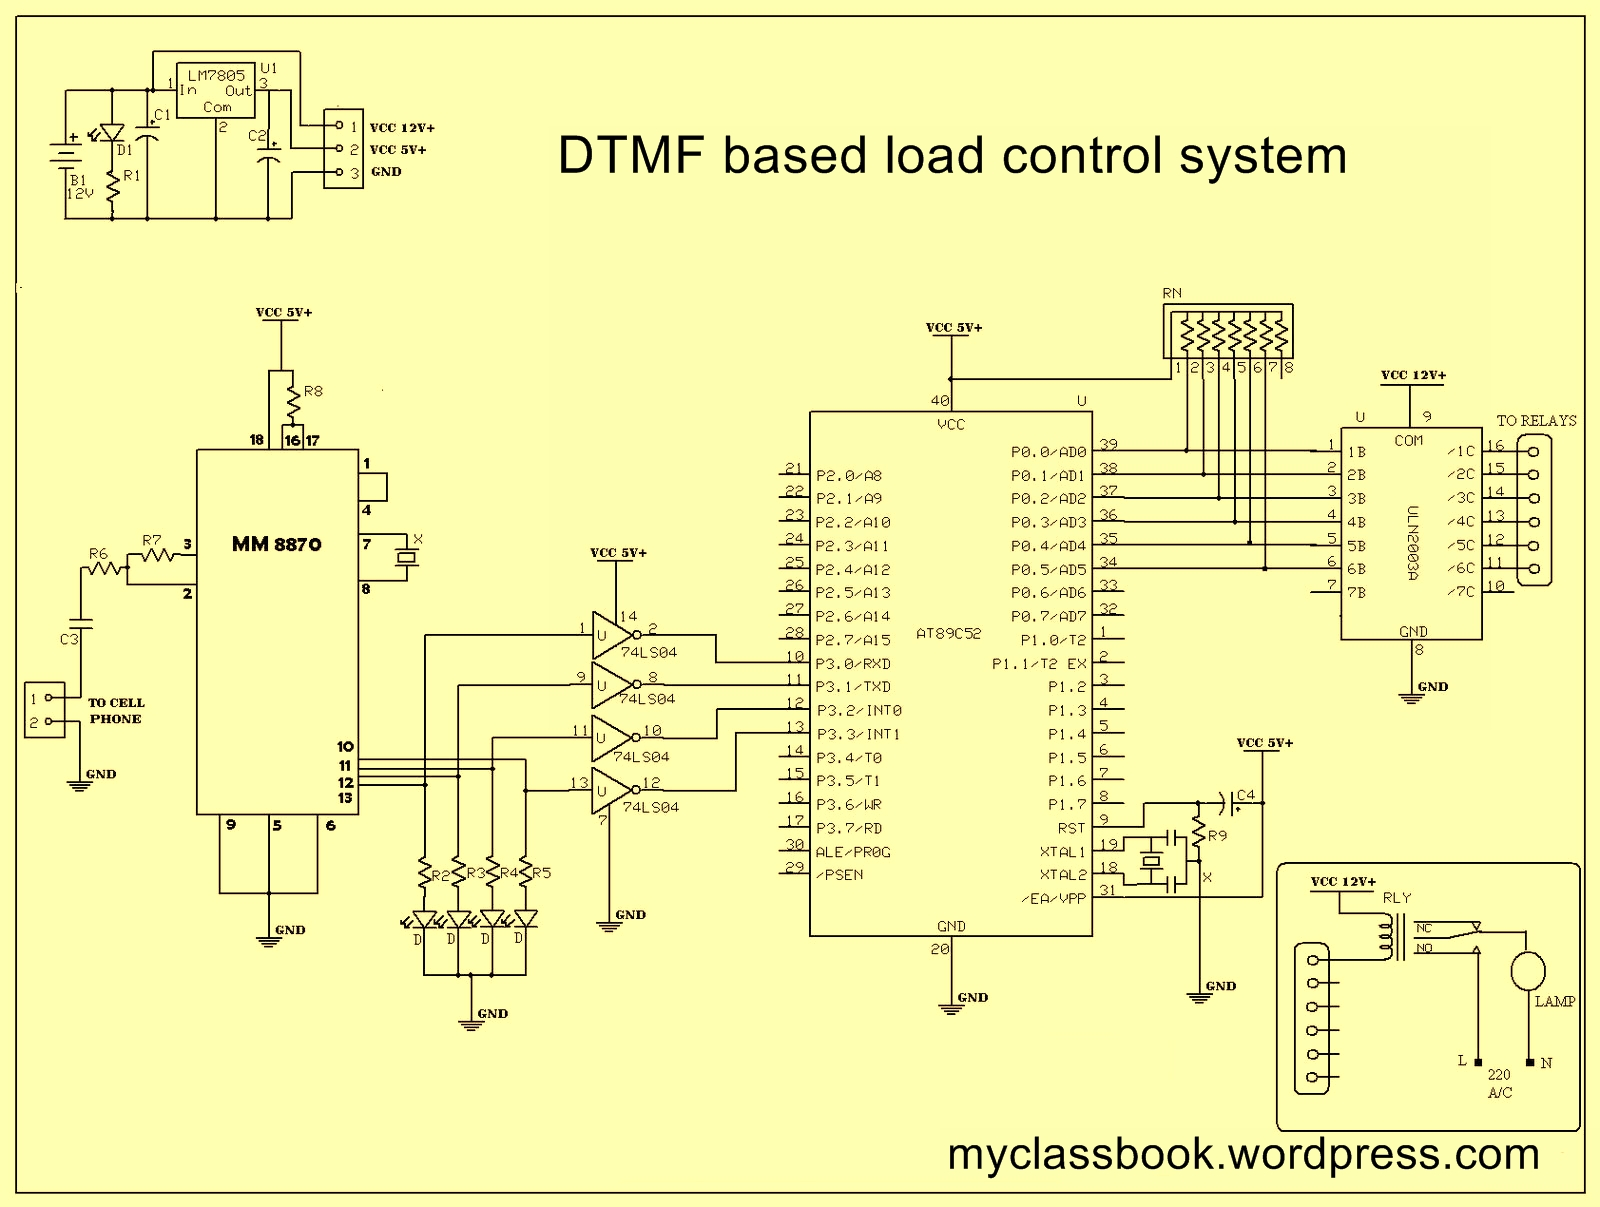 voltmeter wiring diagram switch with Dtmf Based Load Control System Engineering Project on Index besides 12 24v Car Auto Led Rocker 60437170550 as well Motorhome Led Lighting additionally 310888445742 besides Dolphin Gauge Wiring Diagram.